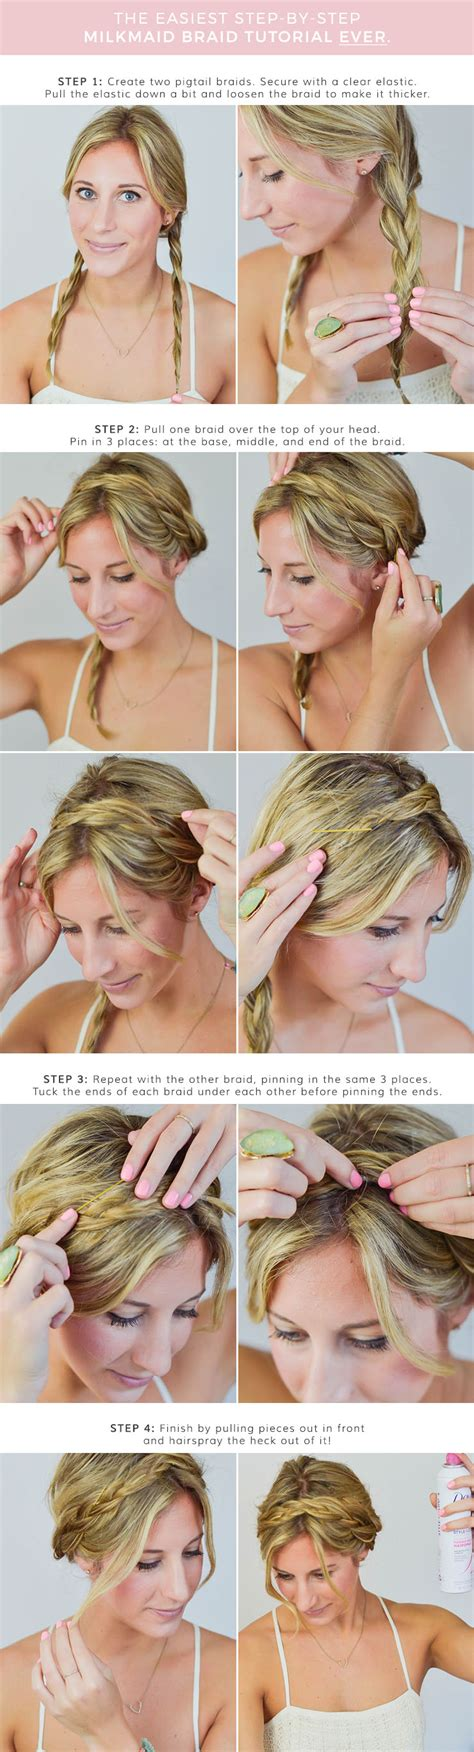 Add Milkmaid Braids To Your Bag Of Hair Tricks by The Only Milkmaid Braid Tutorial You Ll Need